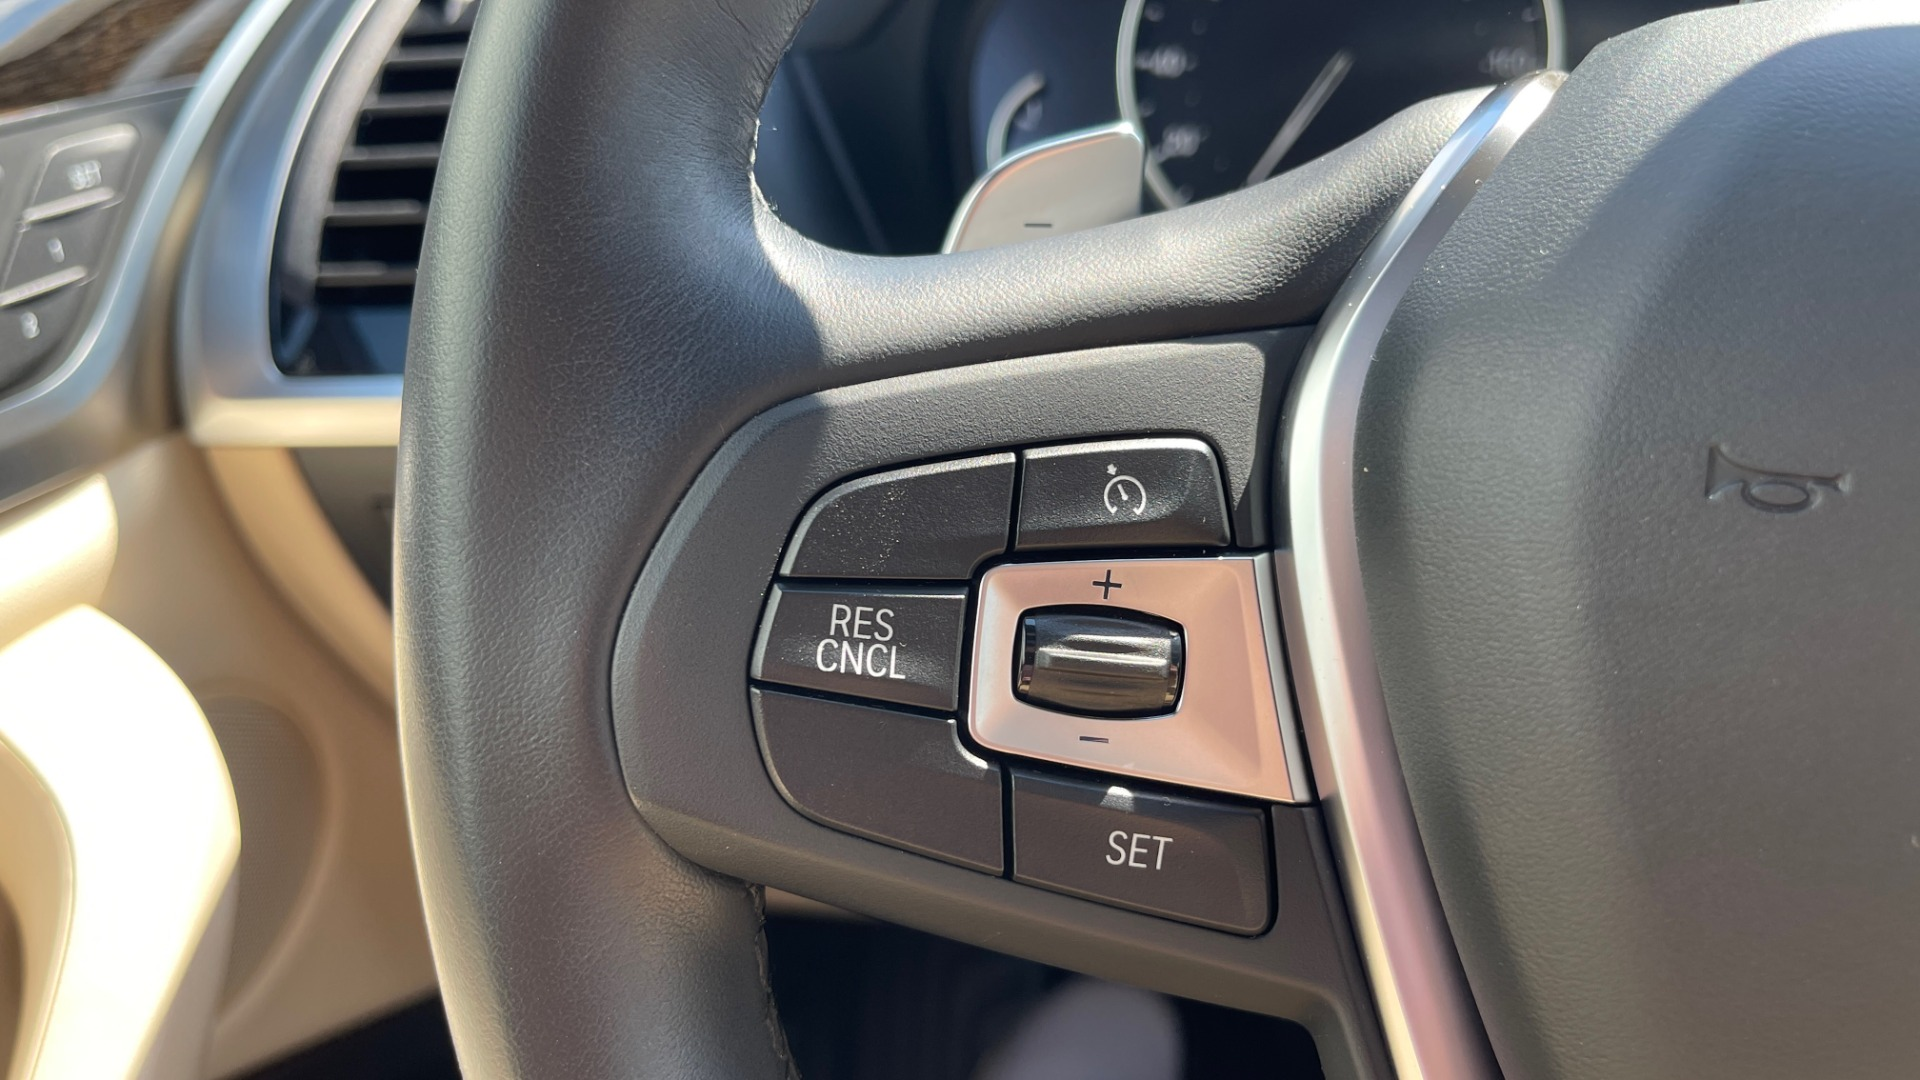 Used 2018 BMW X3 XDRIVE30I CONVENIENCE PKG / HEATED FRONT SEATS / REARVIEW for sale $36,595 at Formula Imports in Charlotte NC 28227 36